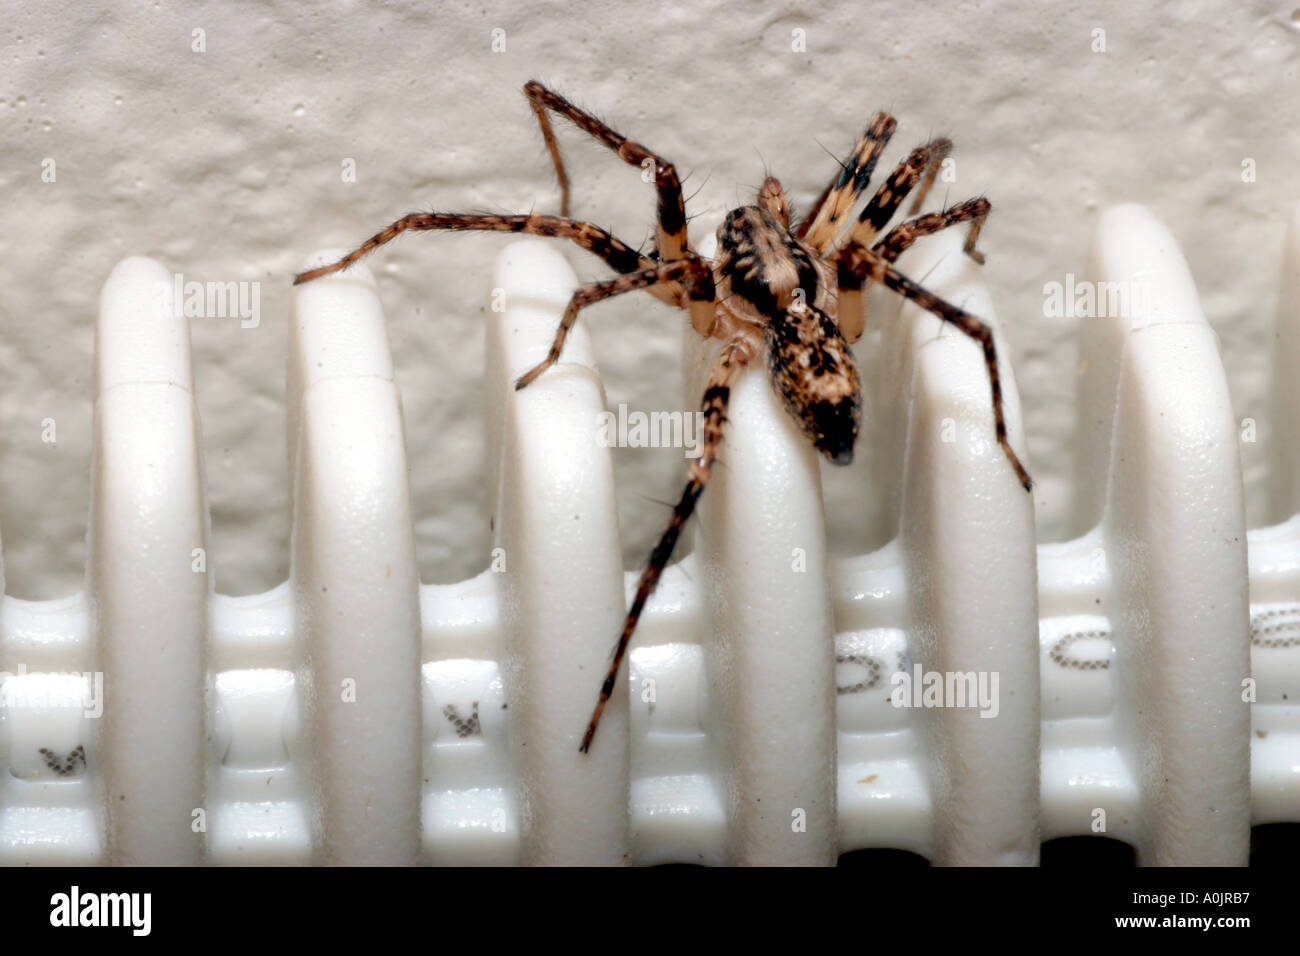 Buzzing spider, a european Ghost spider. Anyphaena accentuata. - Stock Image